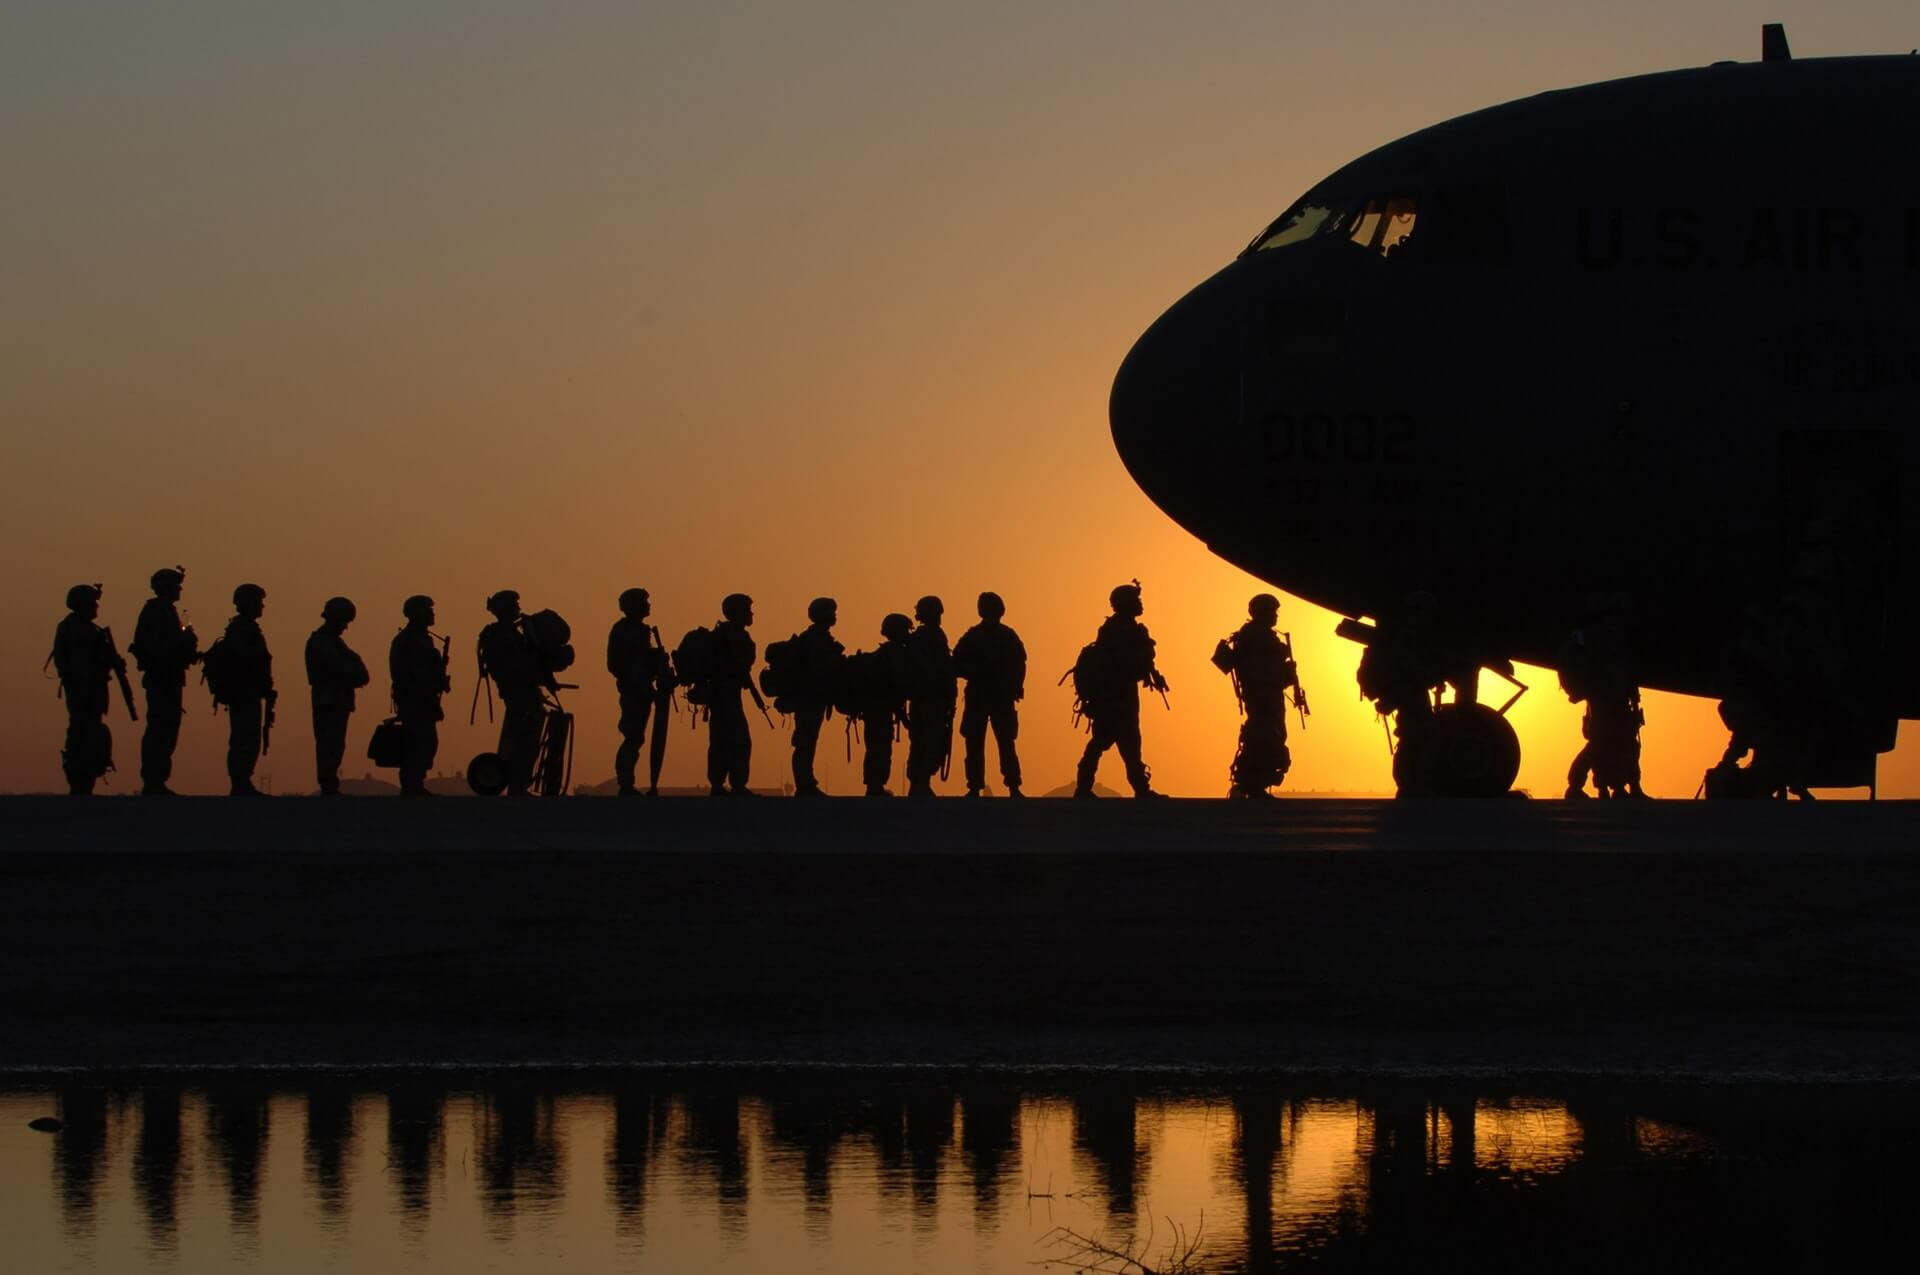 Soldiers silhouetted agains the dawn sky line up to board a military plane.